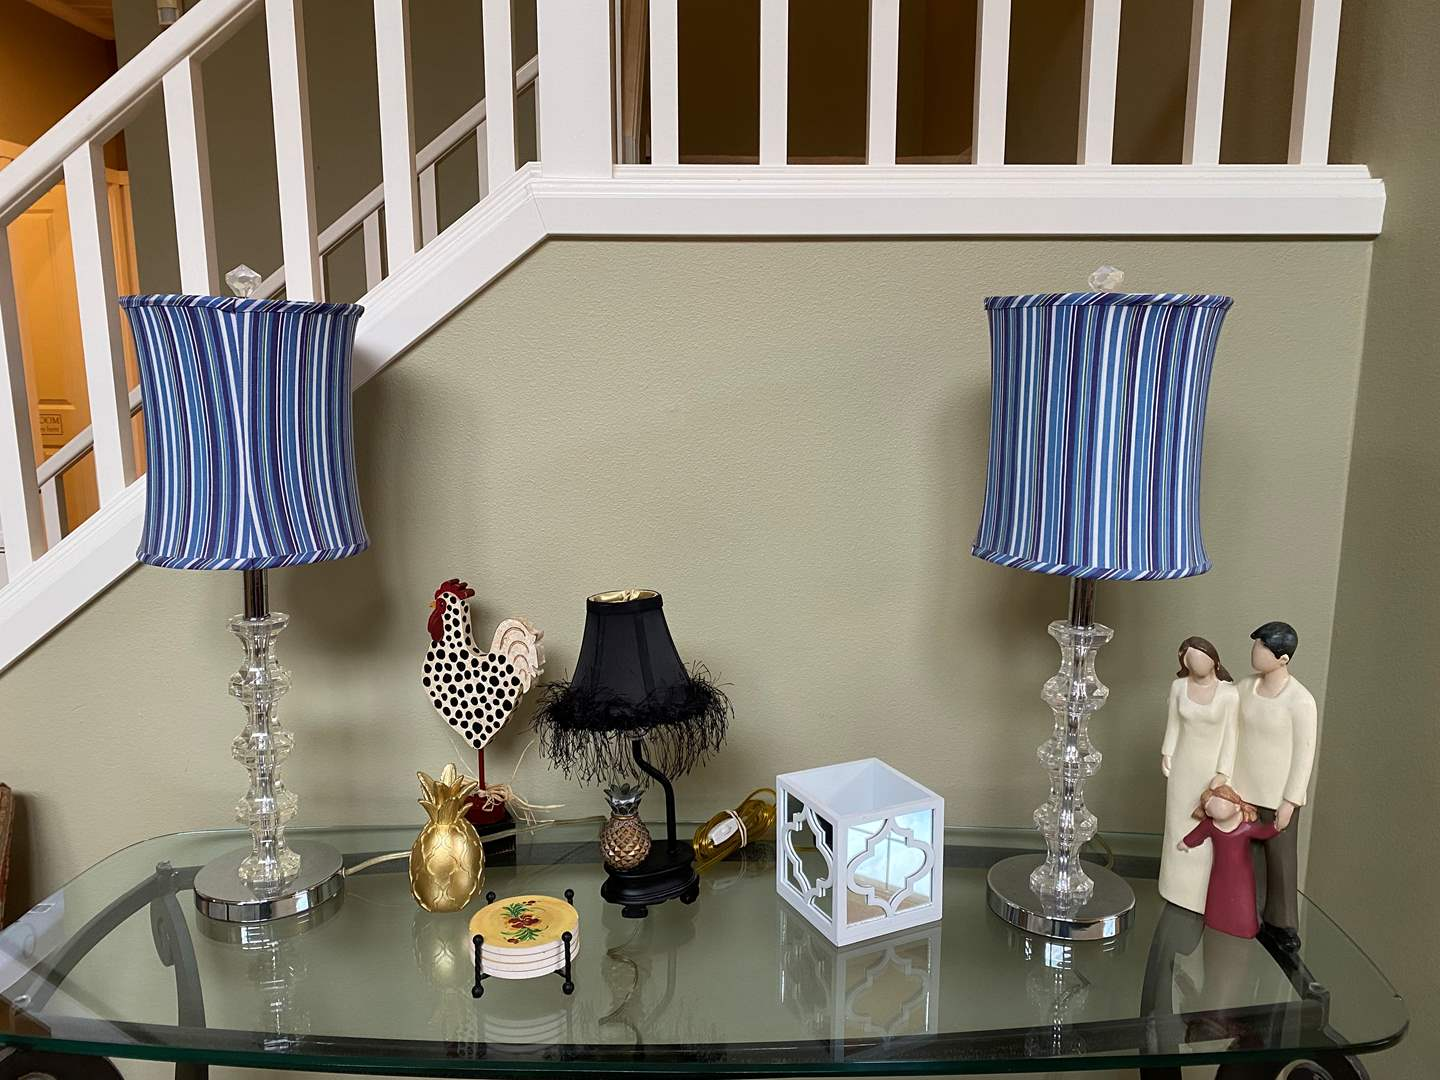 Lot # 15 - Table Lamps & Home Decor (main image)